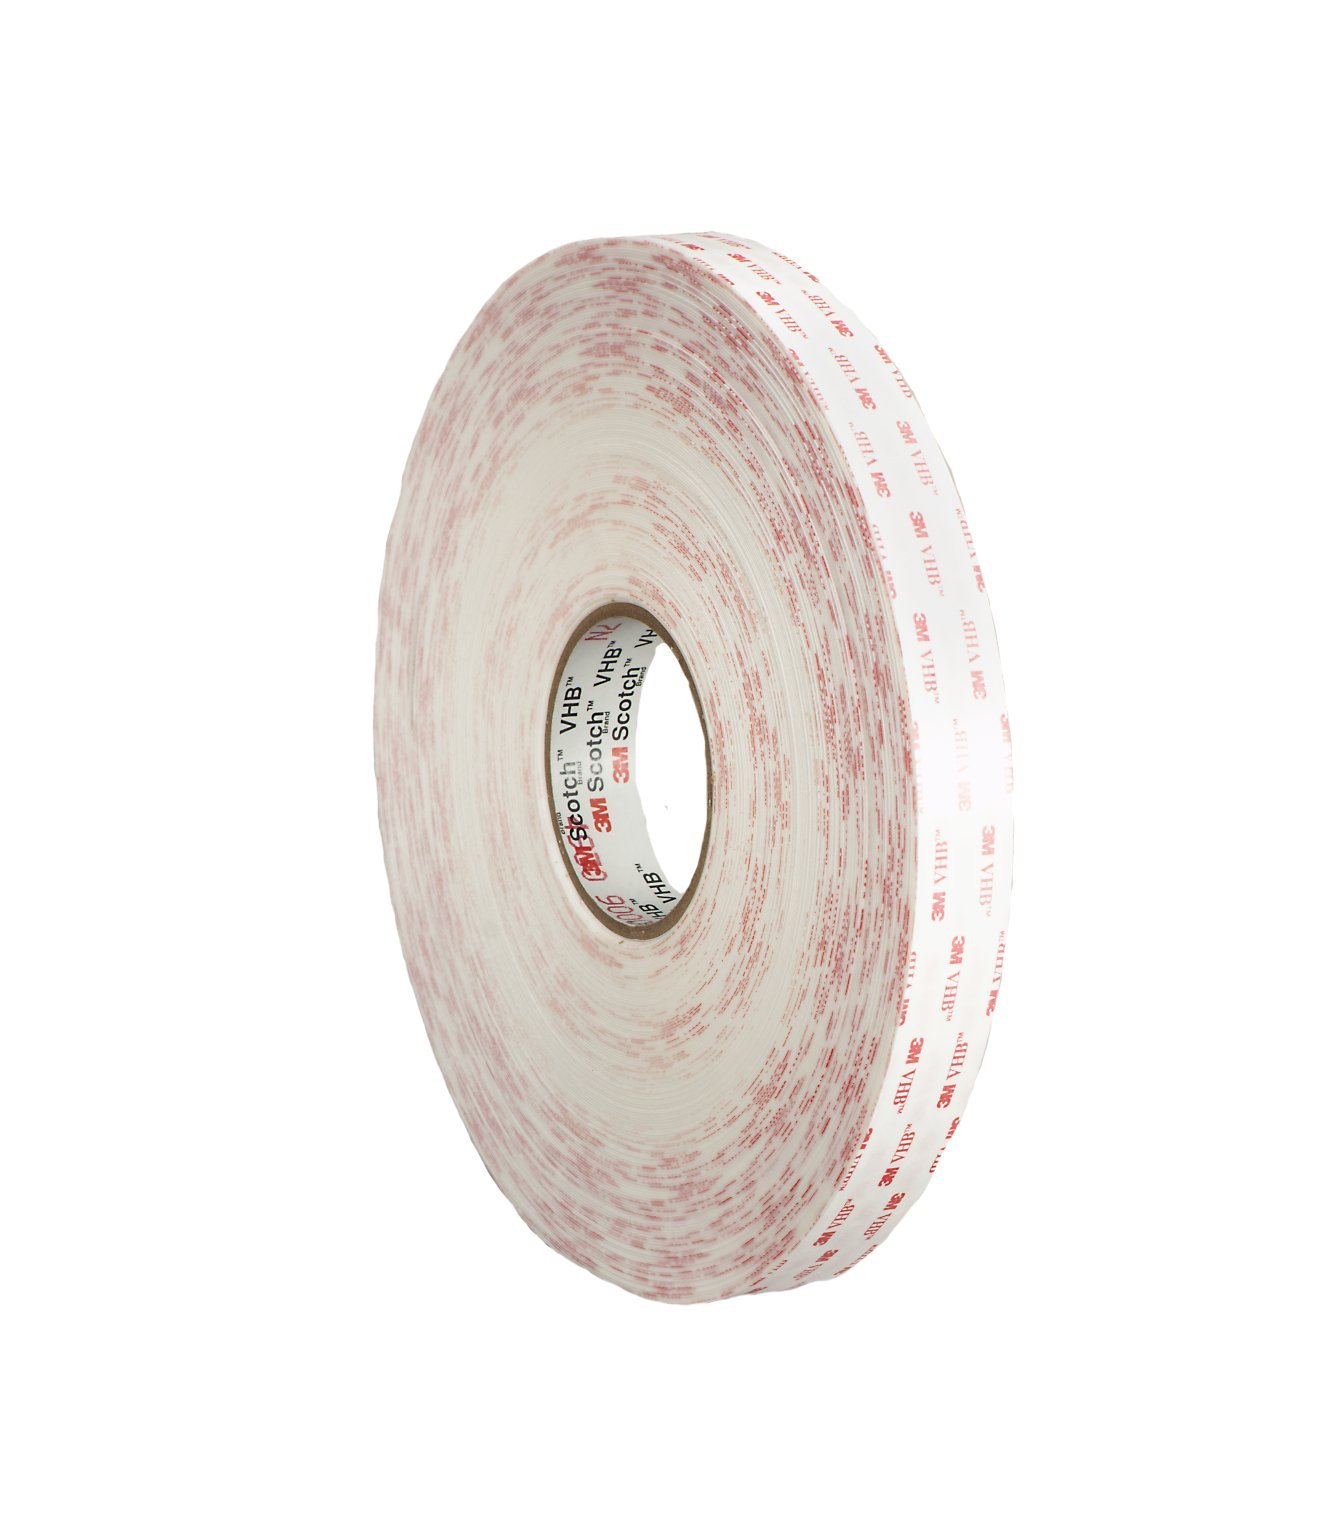 3M VHB Tape 4950 White, Mounting Tape1 in x 36 yd 45.0 mil (Case of 9)